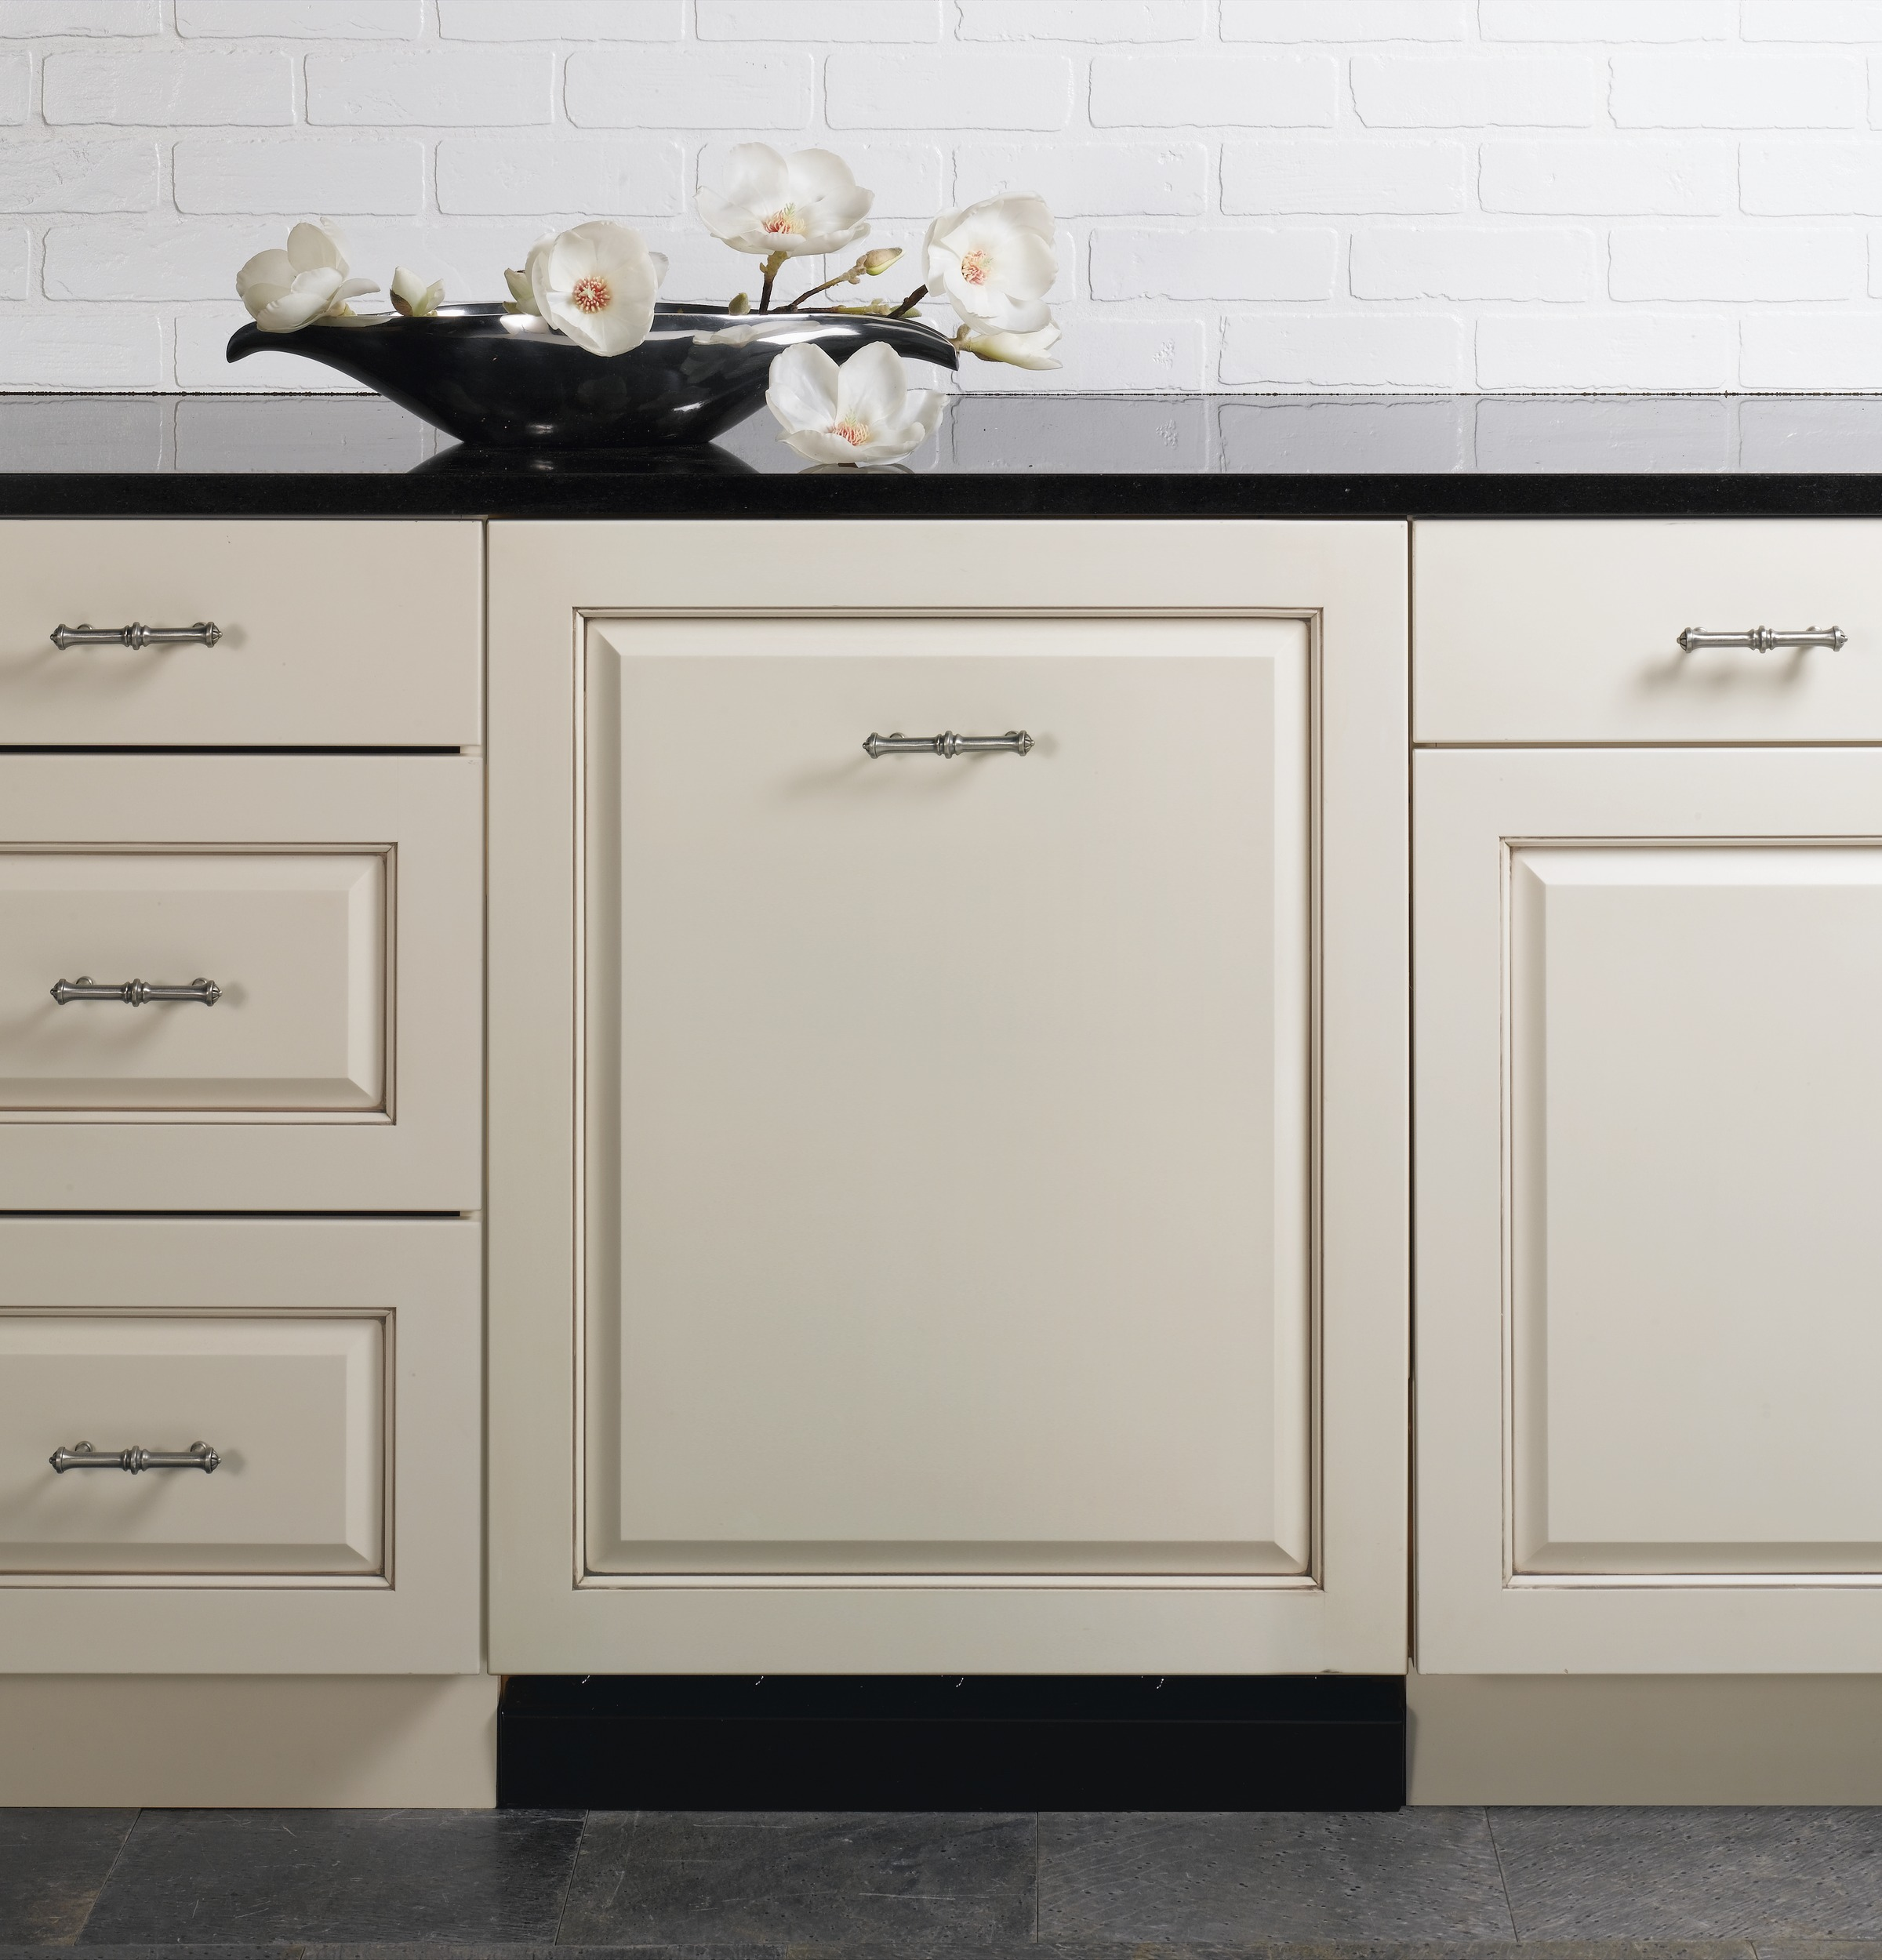 great cabinet allow layout avoid drawers a dishwasher example top next drawer to leaving wendykitchen design kitchen of additional space the blog mistakes